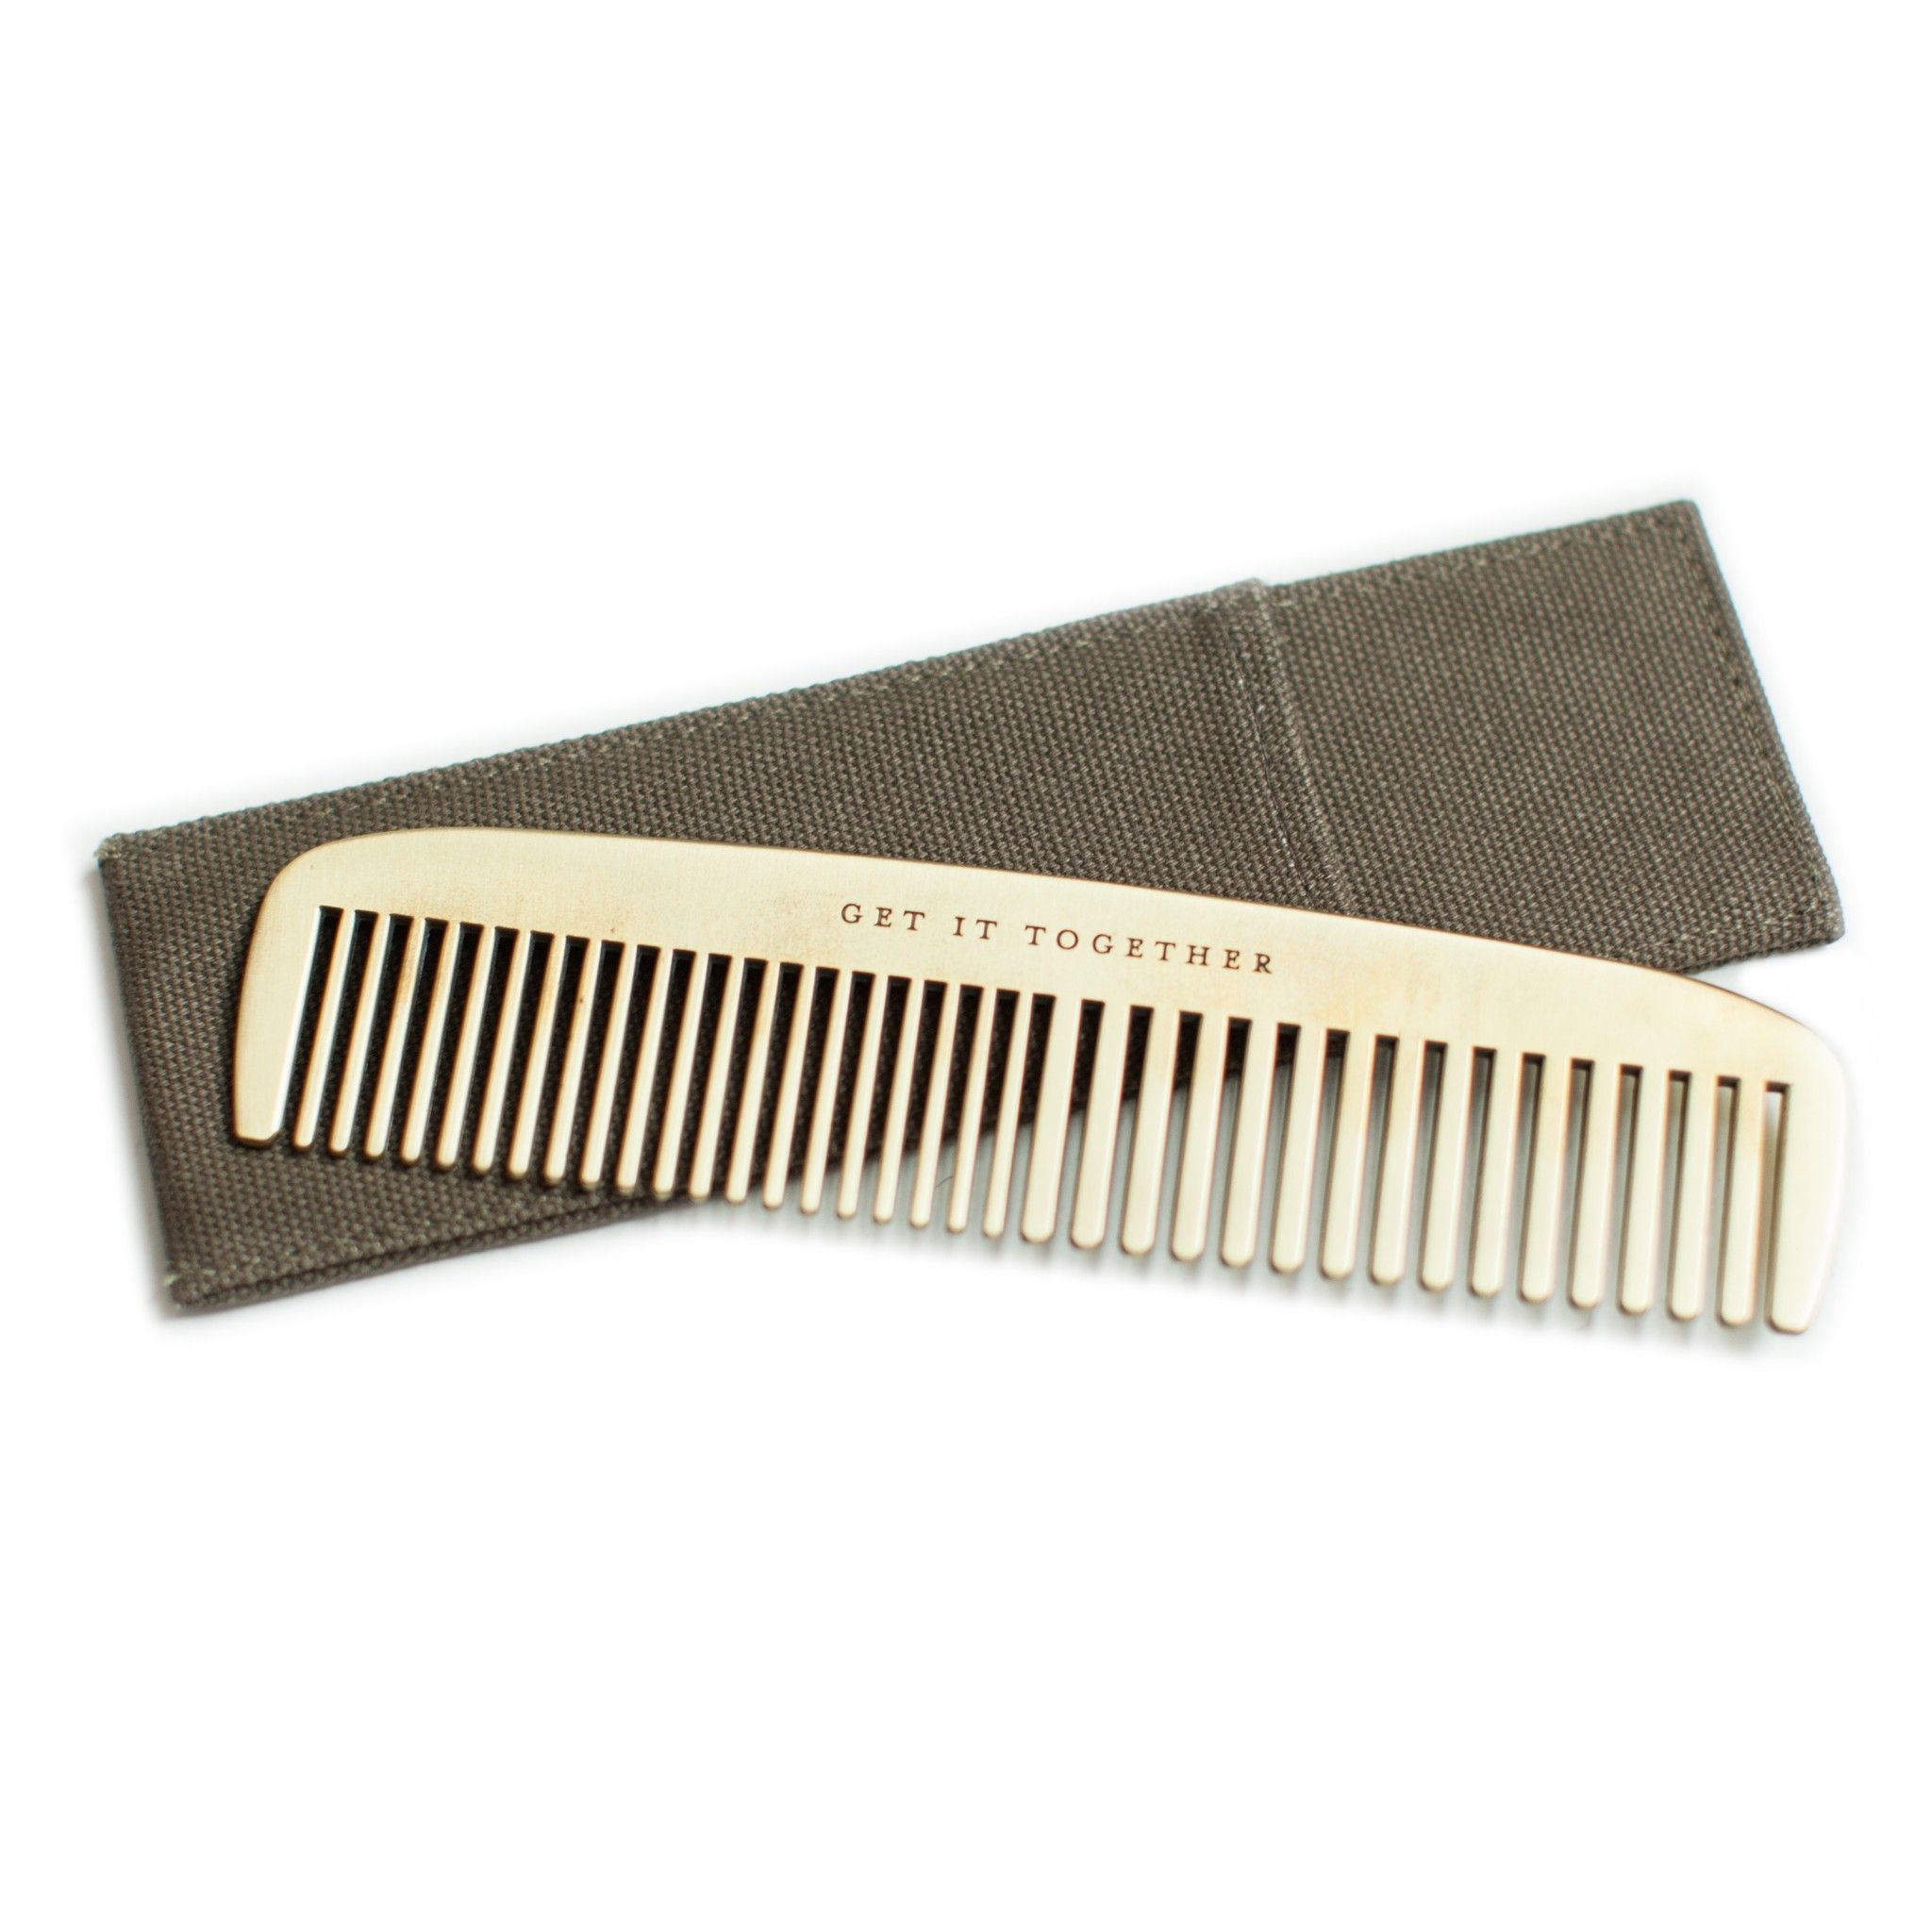 Get It Together Brass Comb by Izola